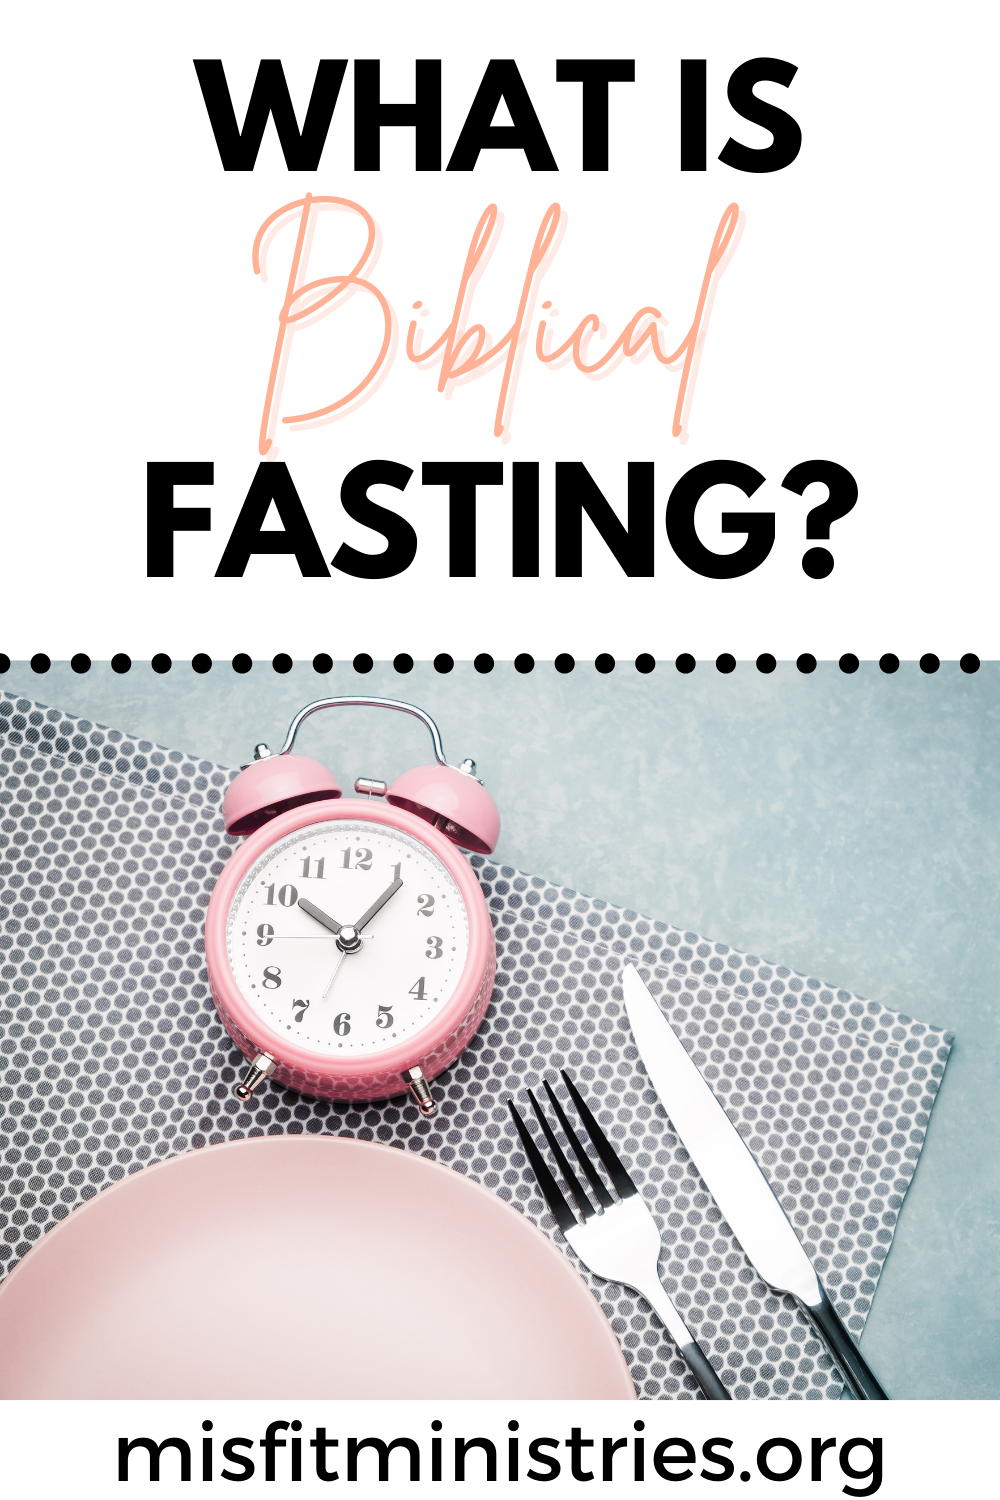 What Is fasting